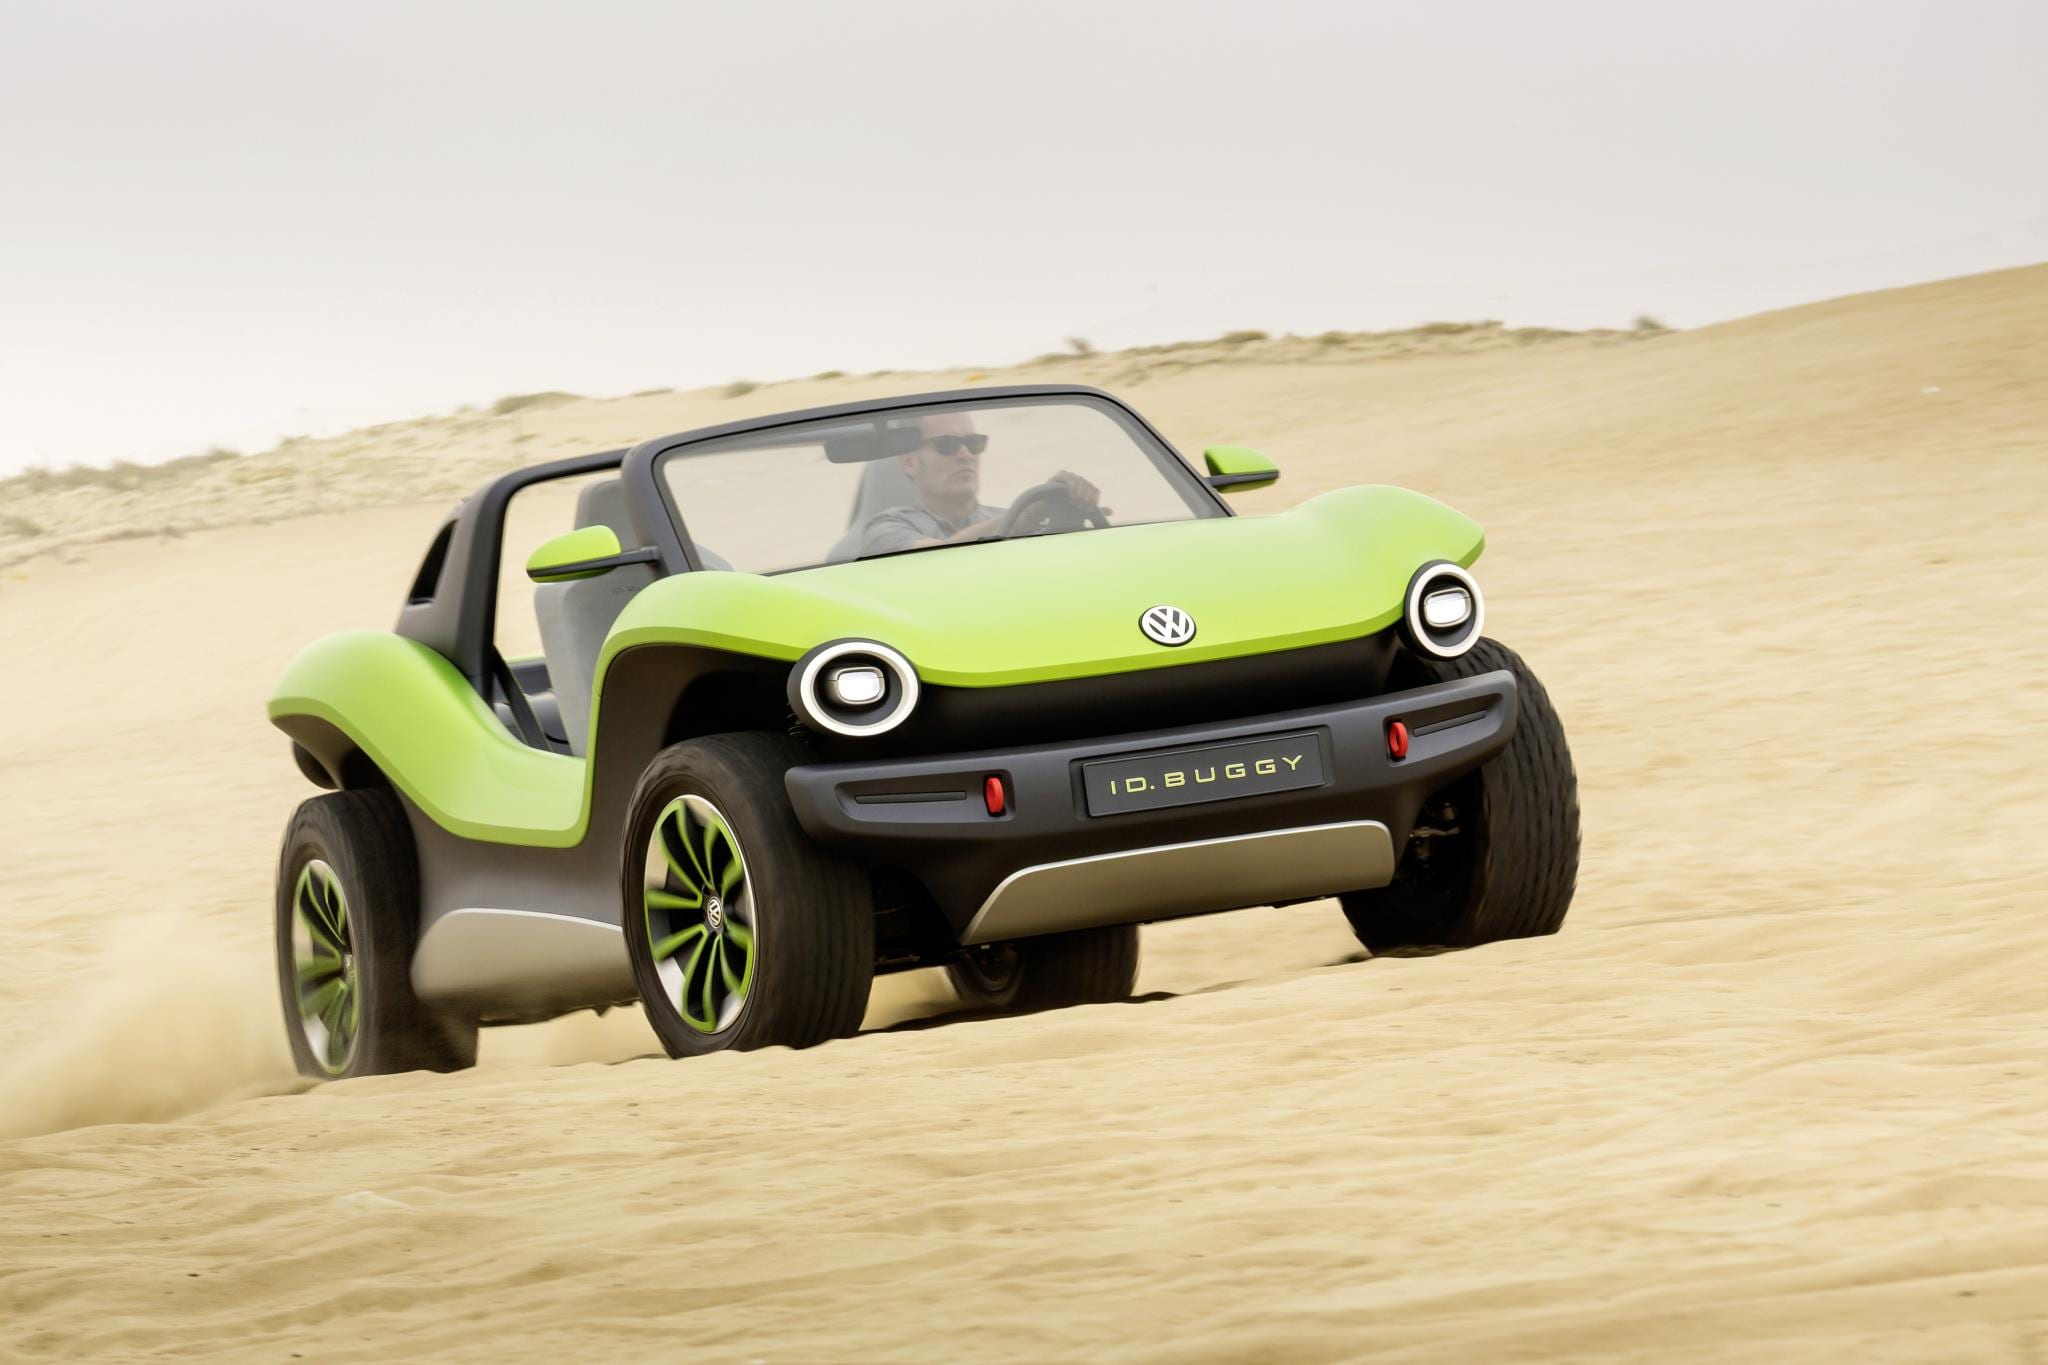 Volkswagen ID. BUGGY driving on a beach